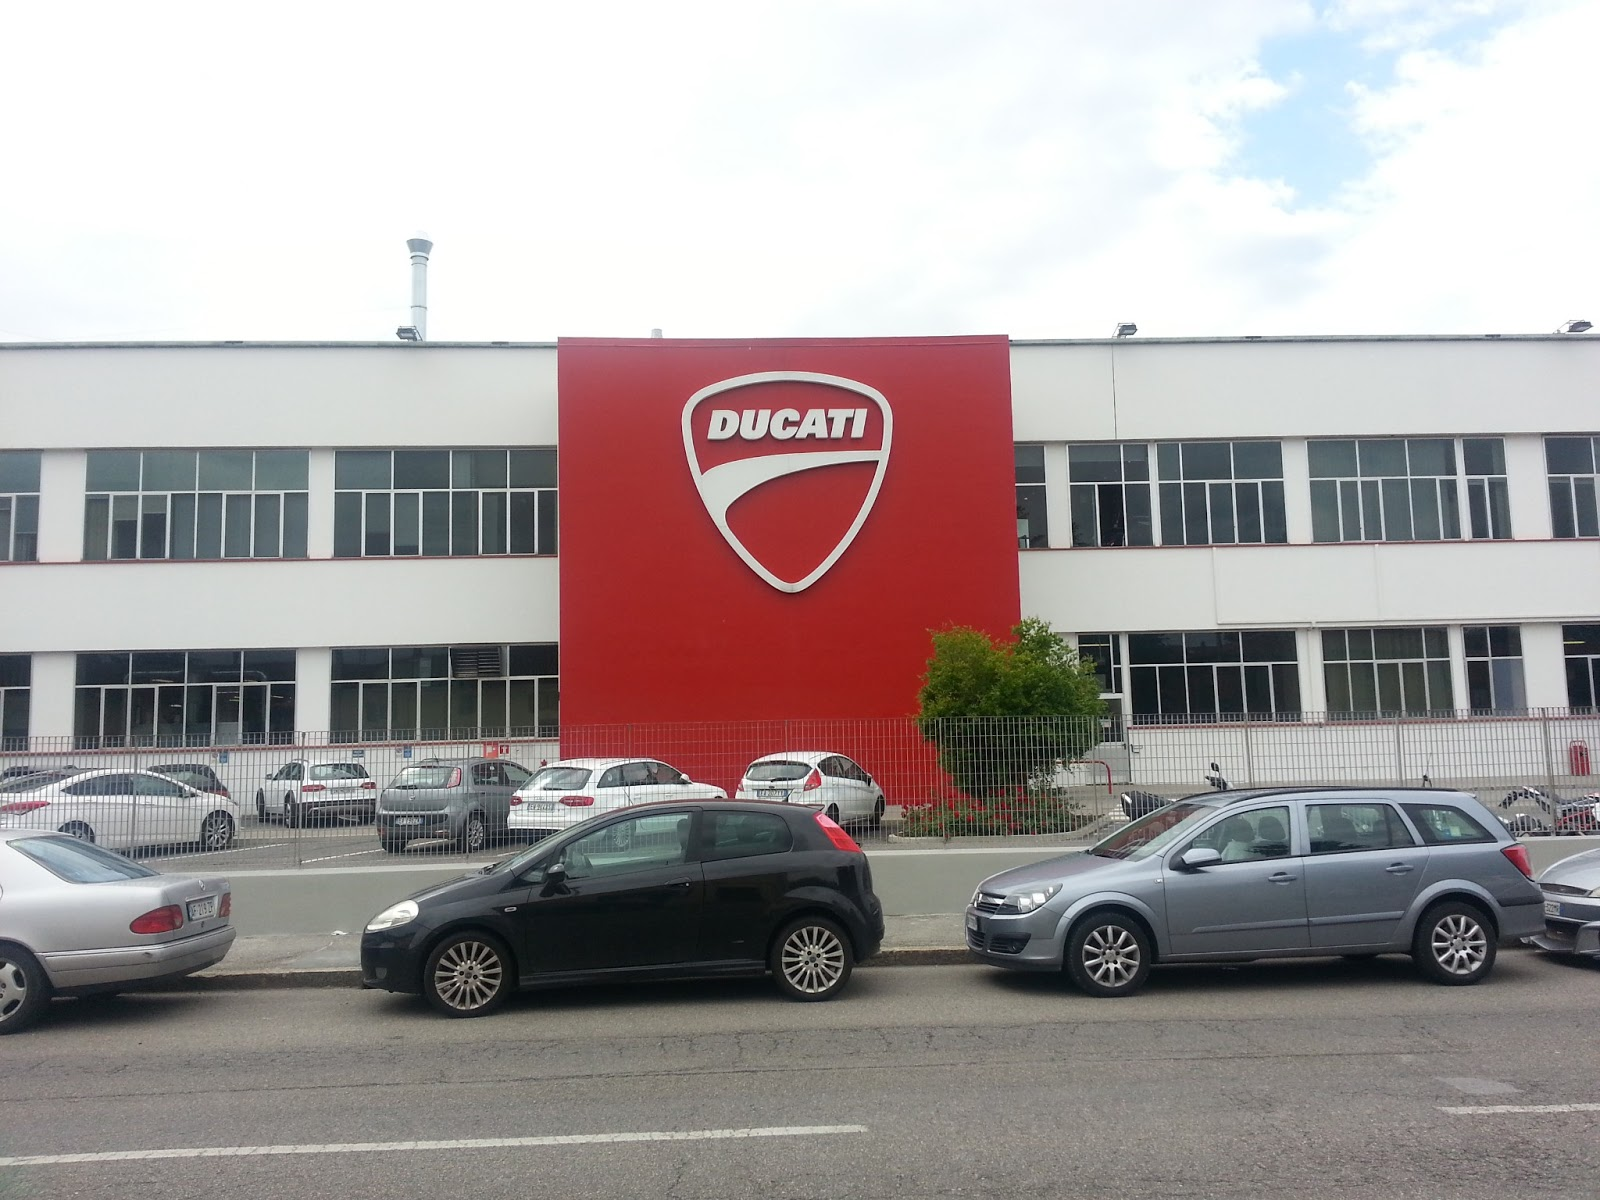 evil stig: the ducati museum and factory tour